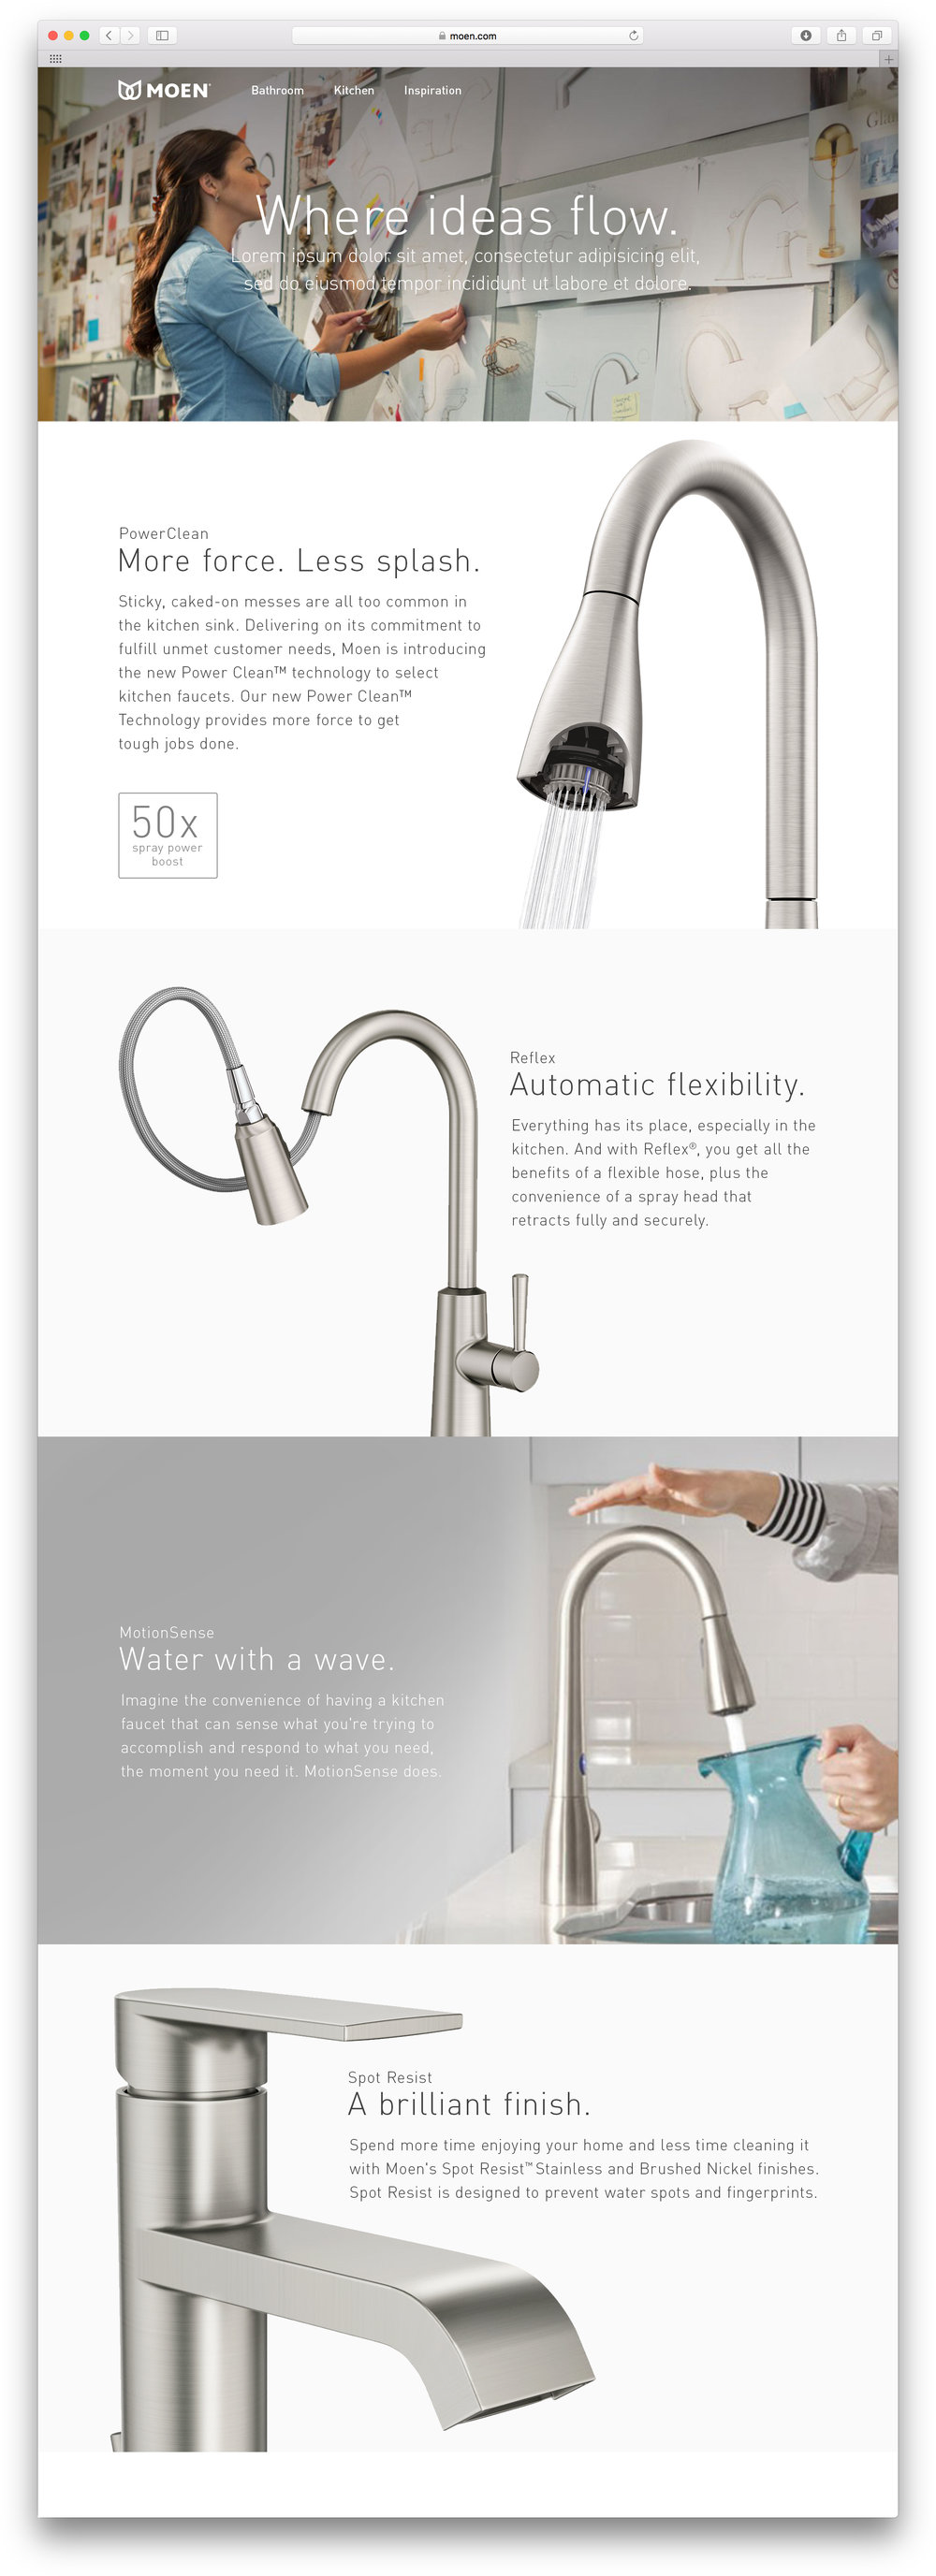 Moen.com - Innovation.jpg